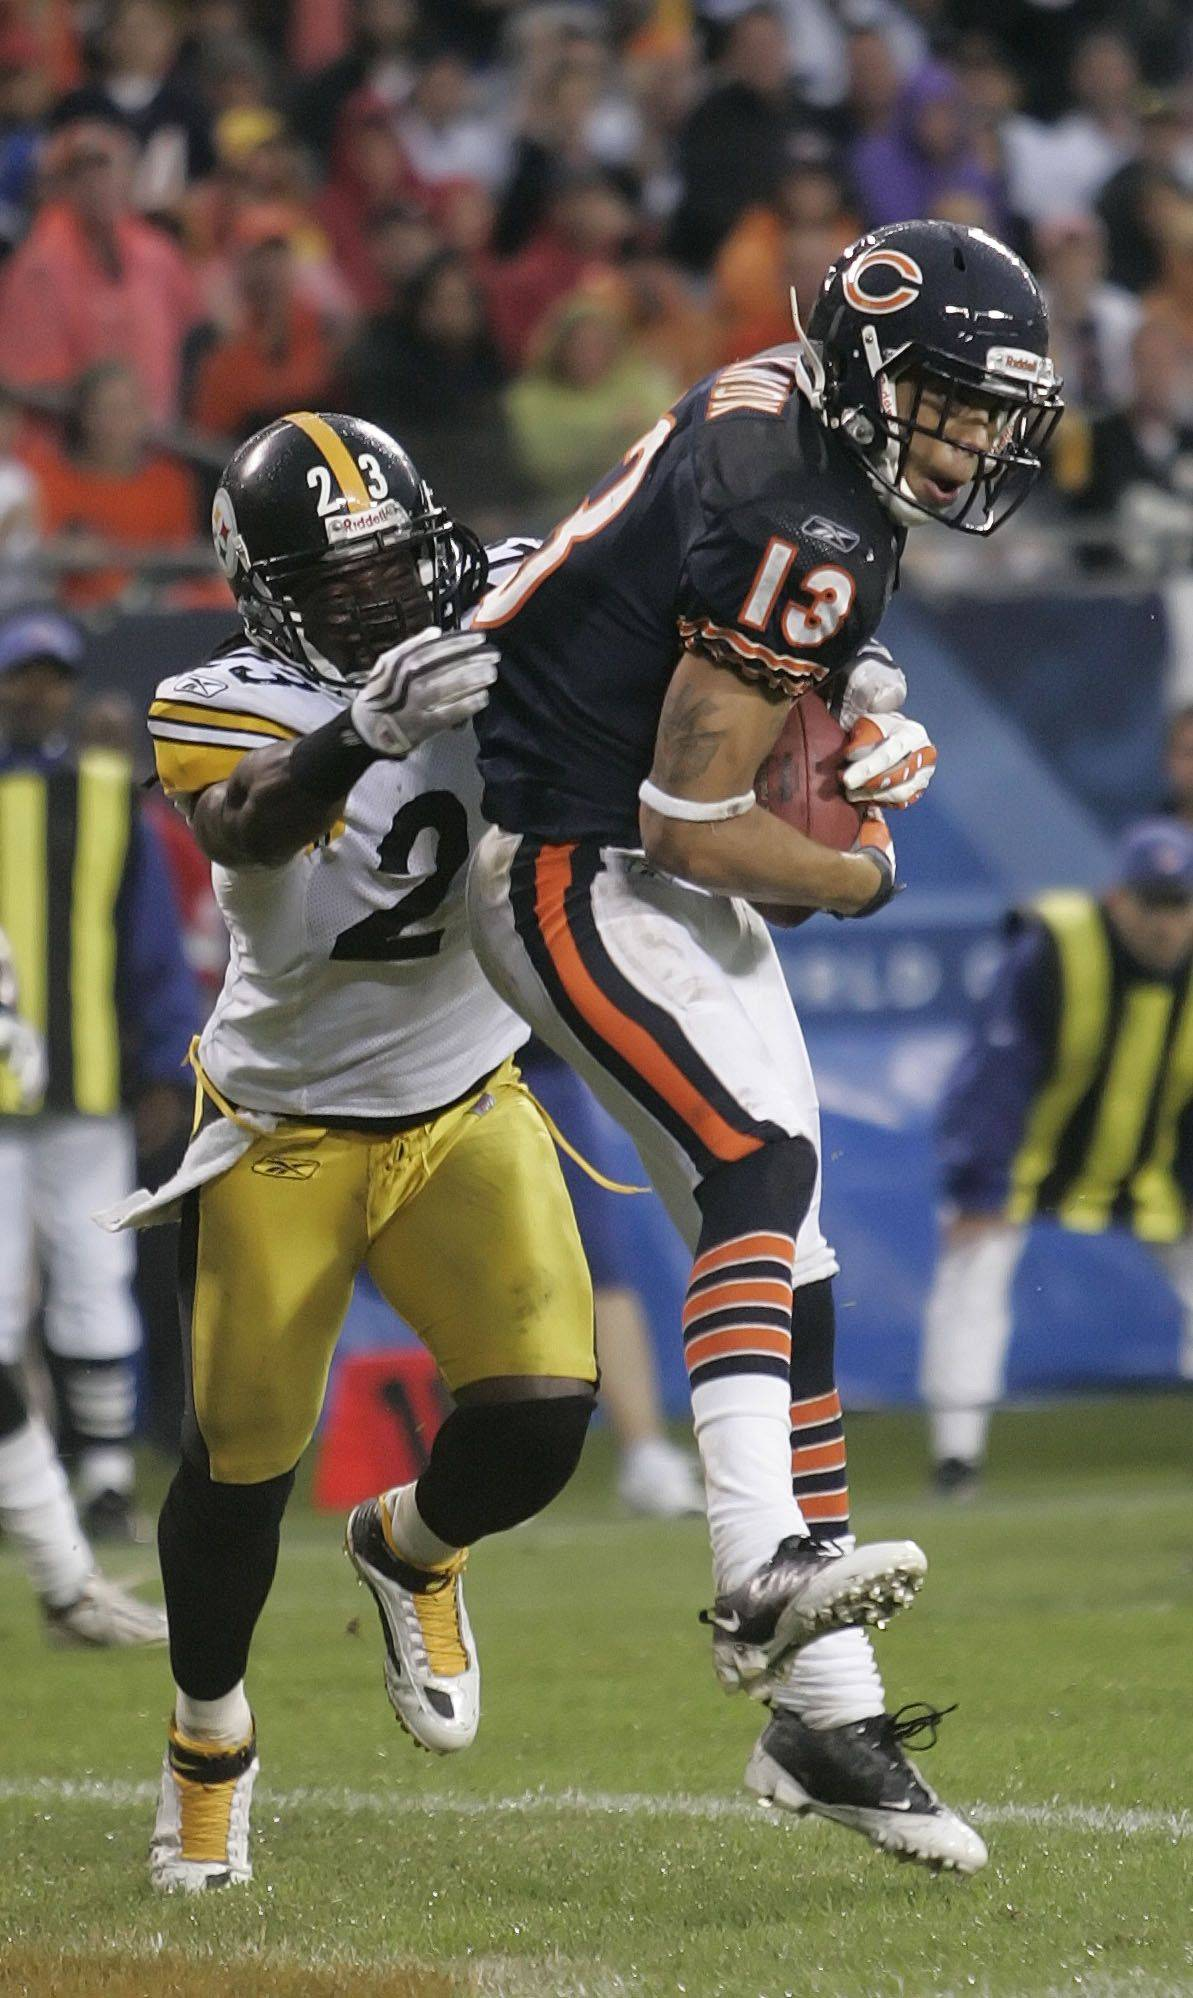 Johnny Knox could be back soon as the Bears' No. 1 wide receiver.